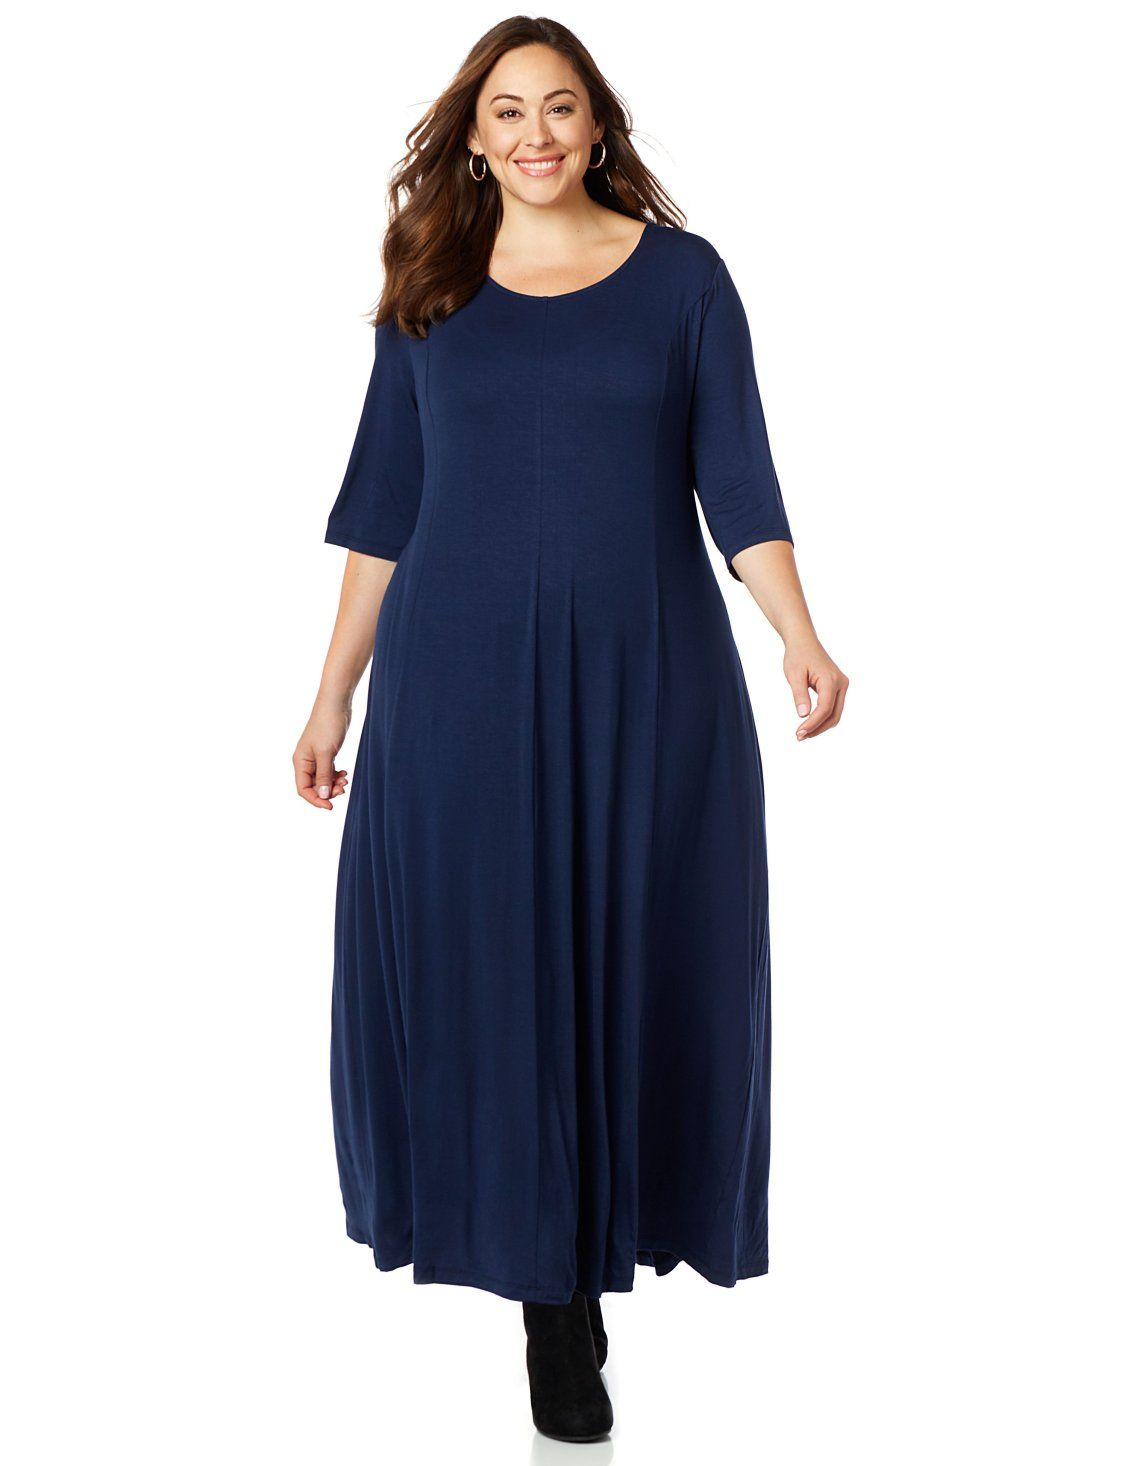 b384543809 Flare Maxi Dress from Catherines Plus Sizes  Our soft